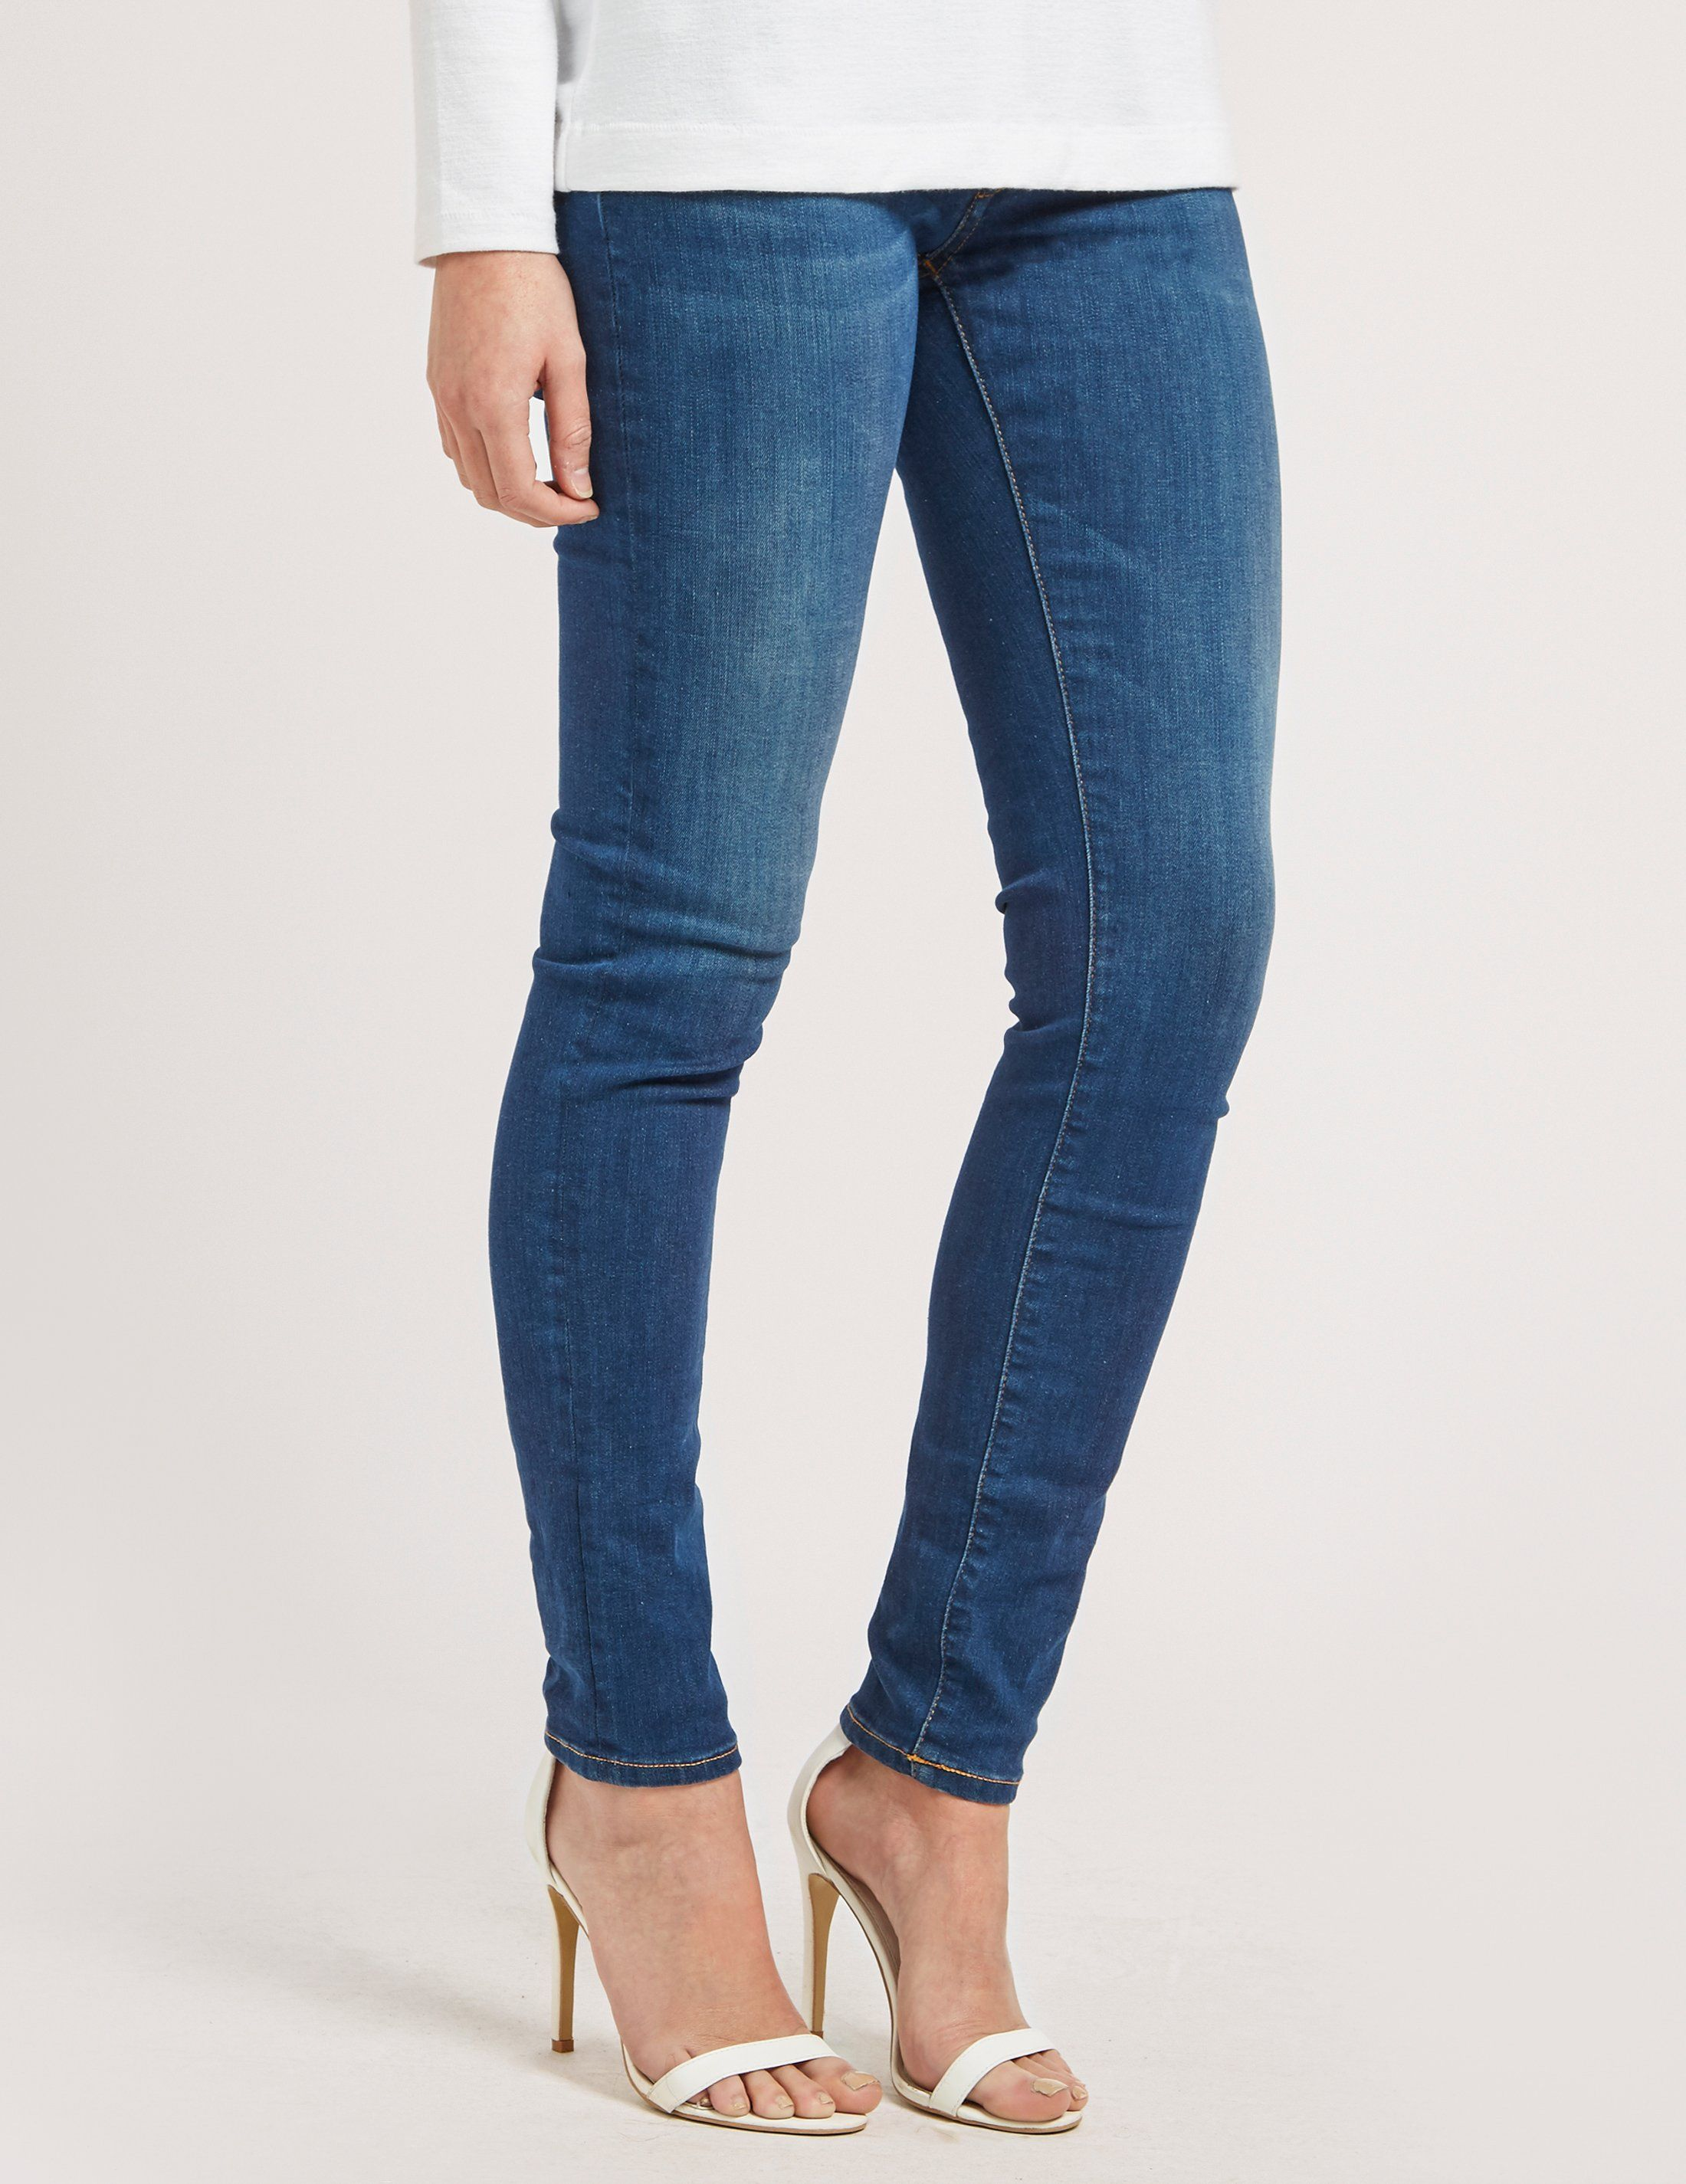 Vivienne Westwood Anglomania New Mornoe Jeggings